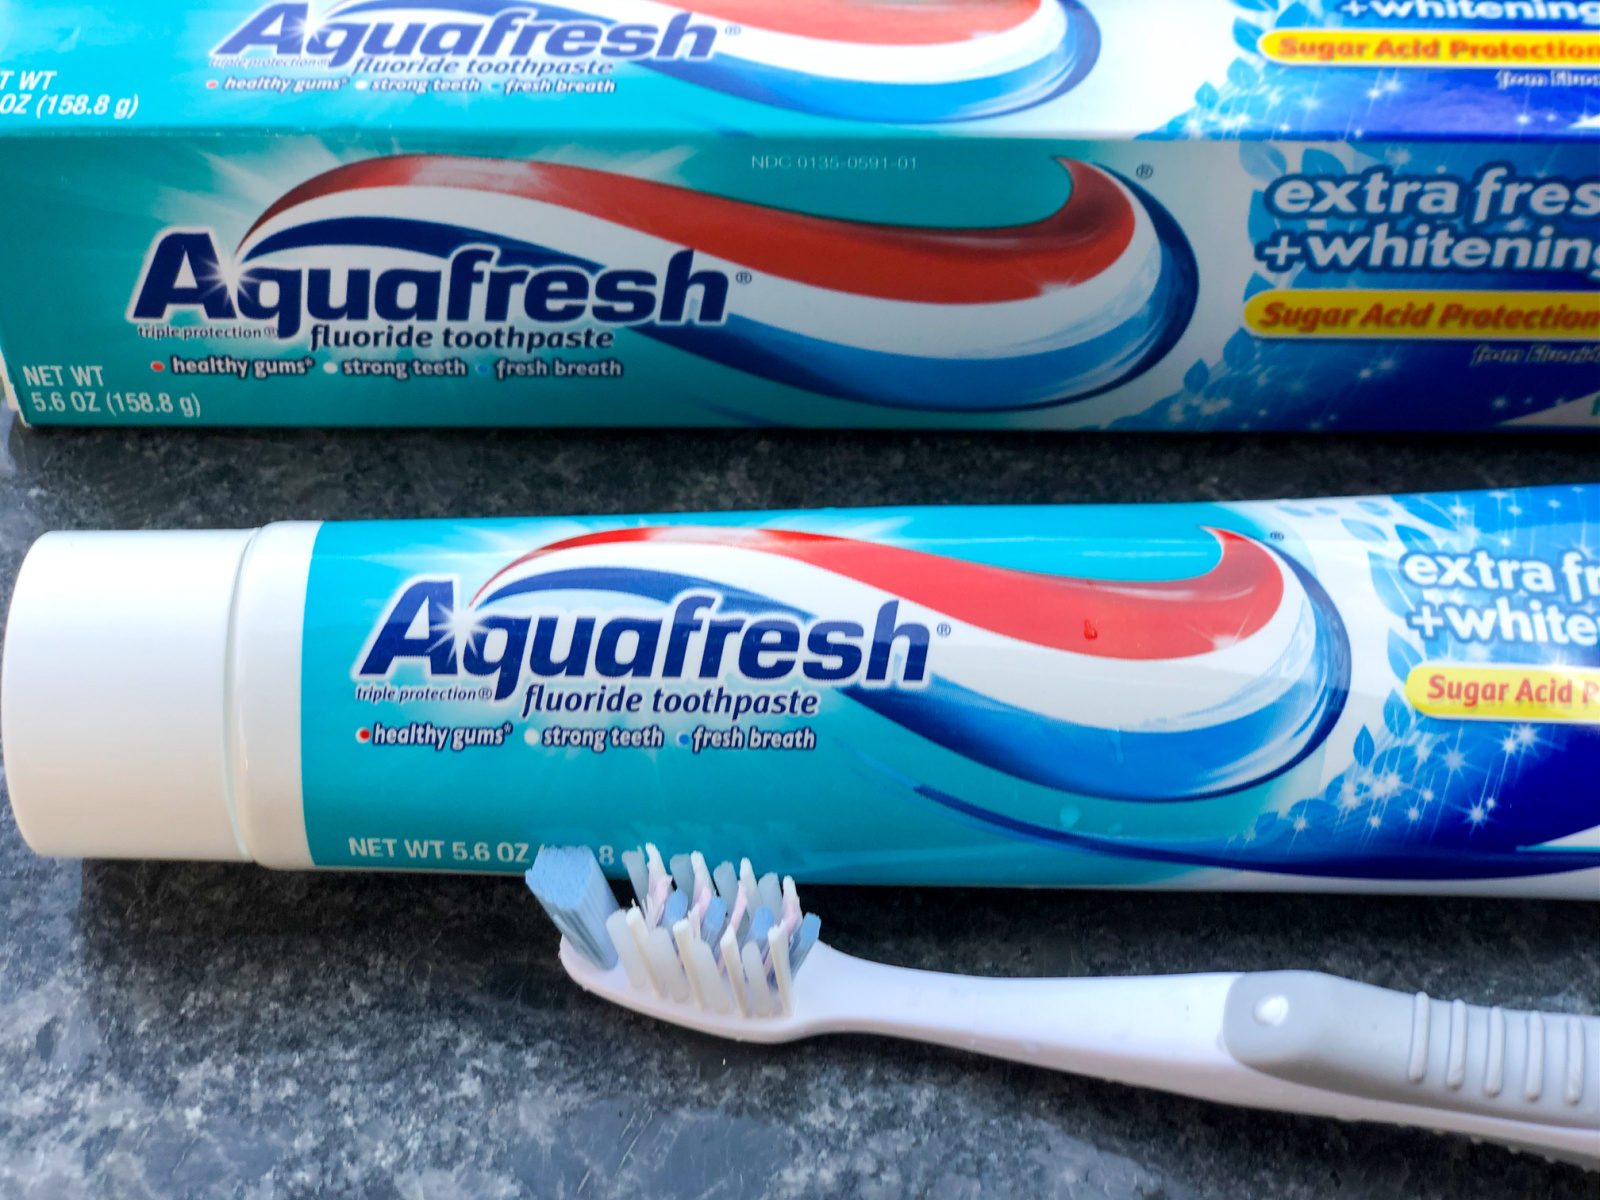 Aquafresh Toothpaste Only 59¢ At Publix (Hurry Deal Expires Soon!!) on I Heart Publix 1